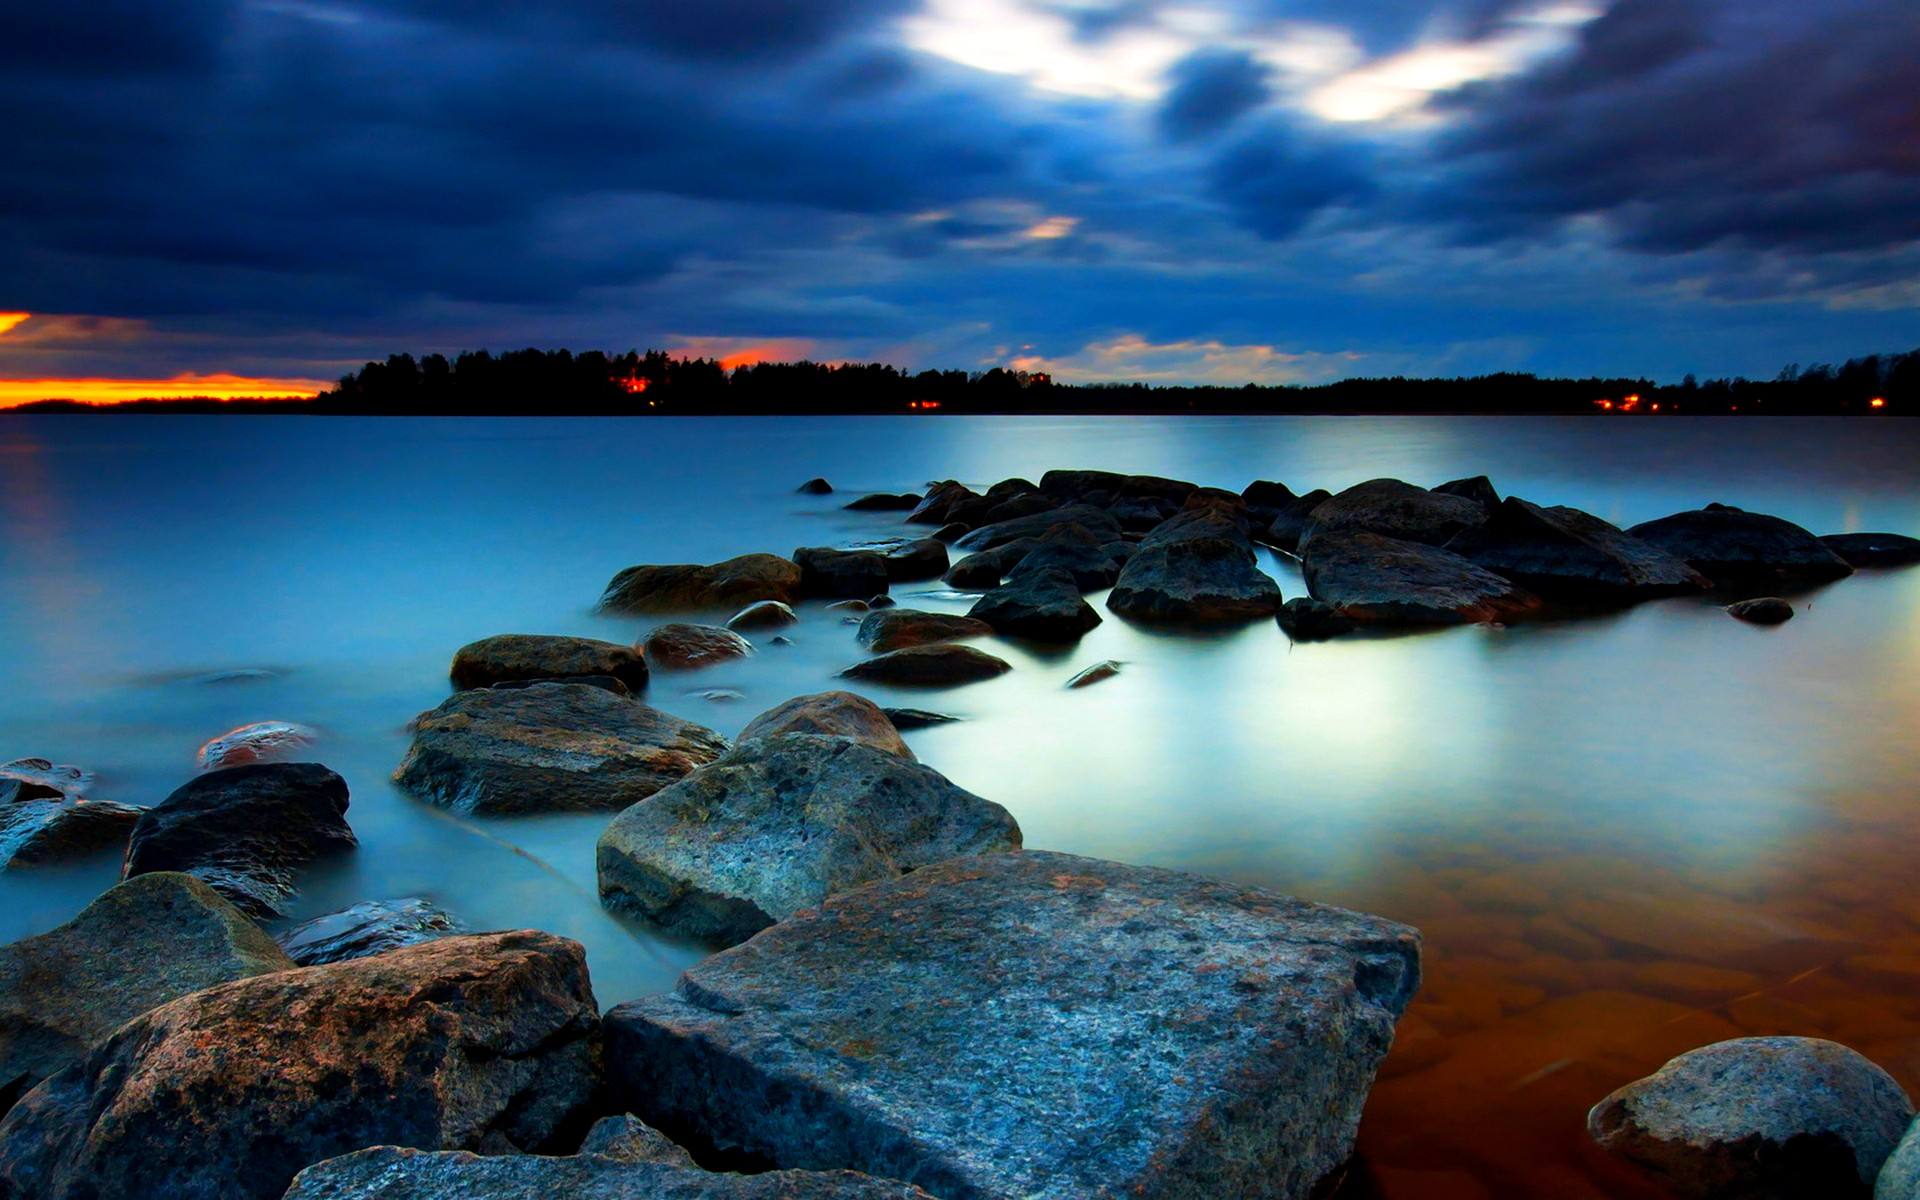 Wallpapers Rocky Beach Desktop Wallpapers: Amazing Rocky Shore Wallpaper